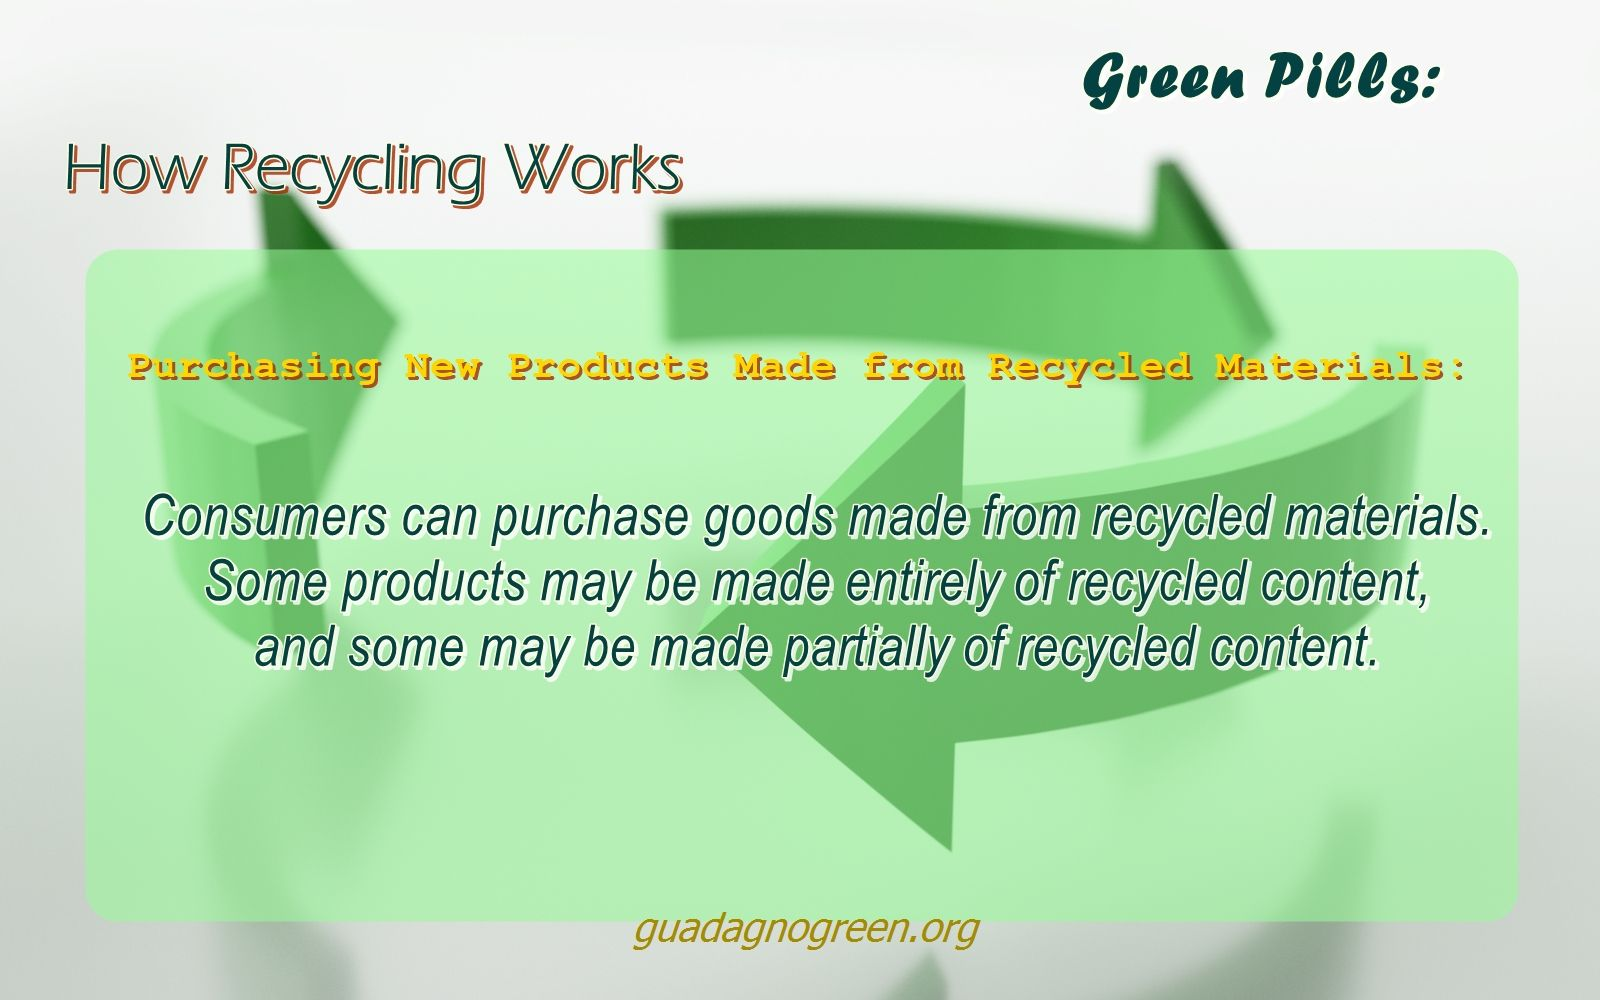 How Recycling Works: Stage 3 - Purchasing New Products Made from Recycled Plastic